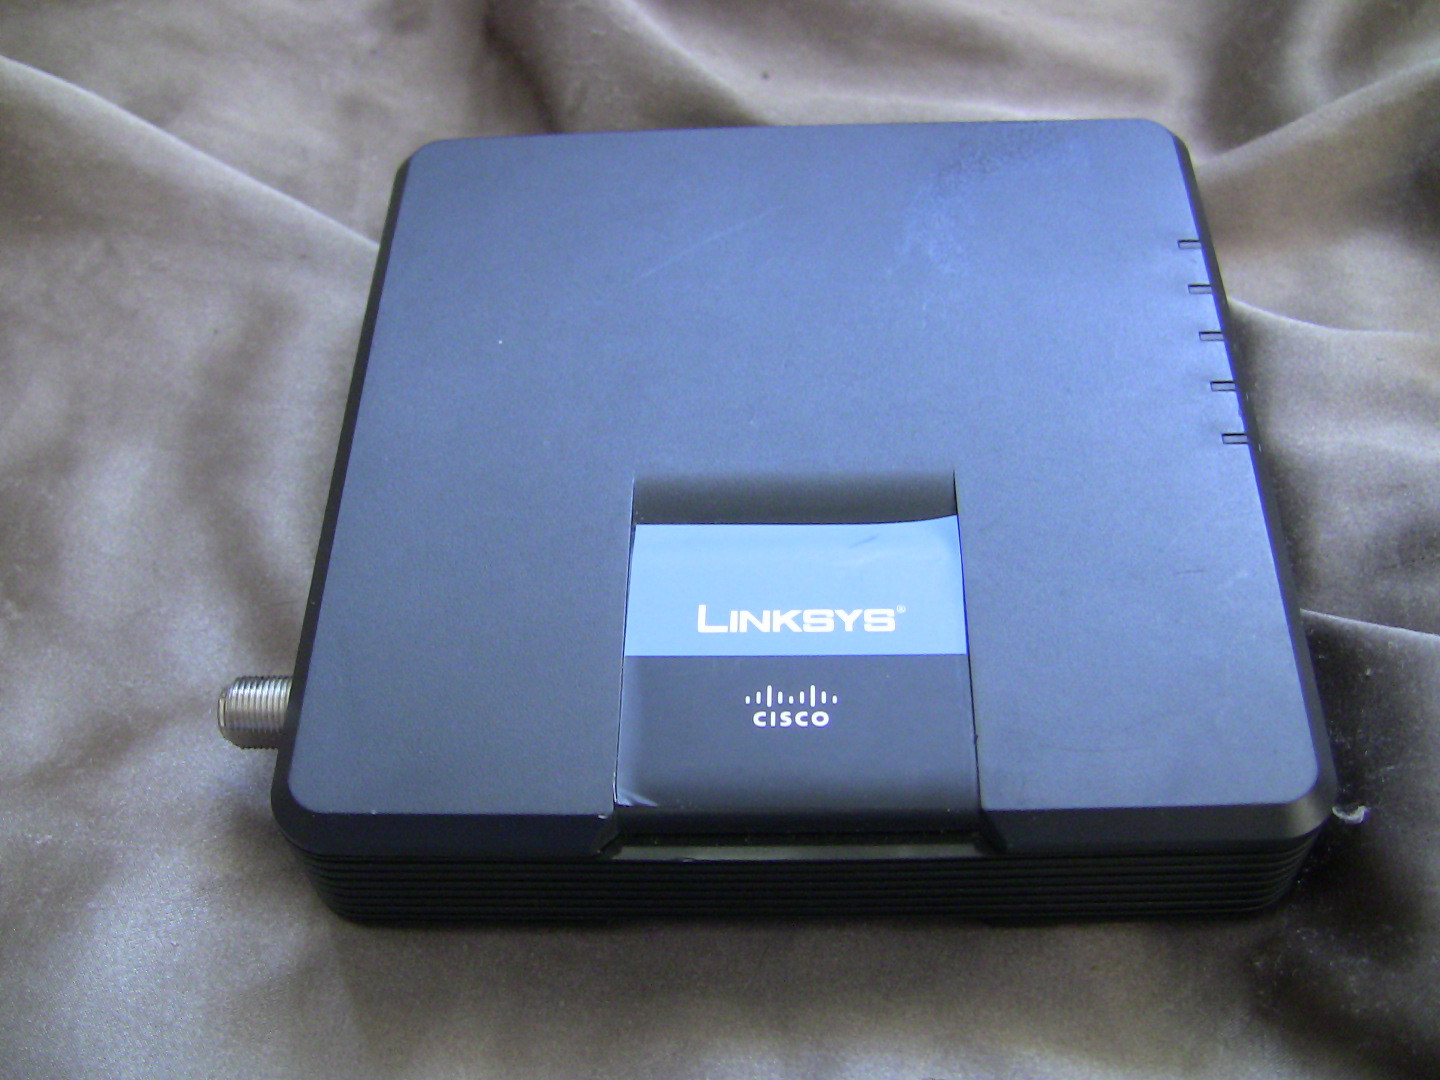 Linksys Cable Modem Cm100 No Power Cord and 14 similar items